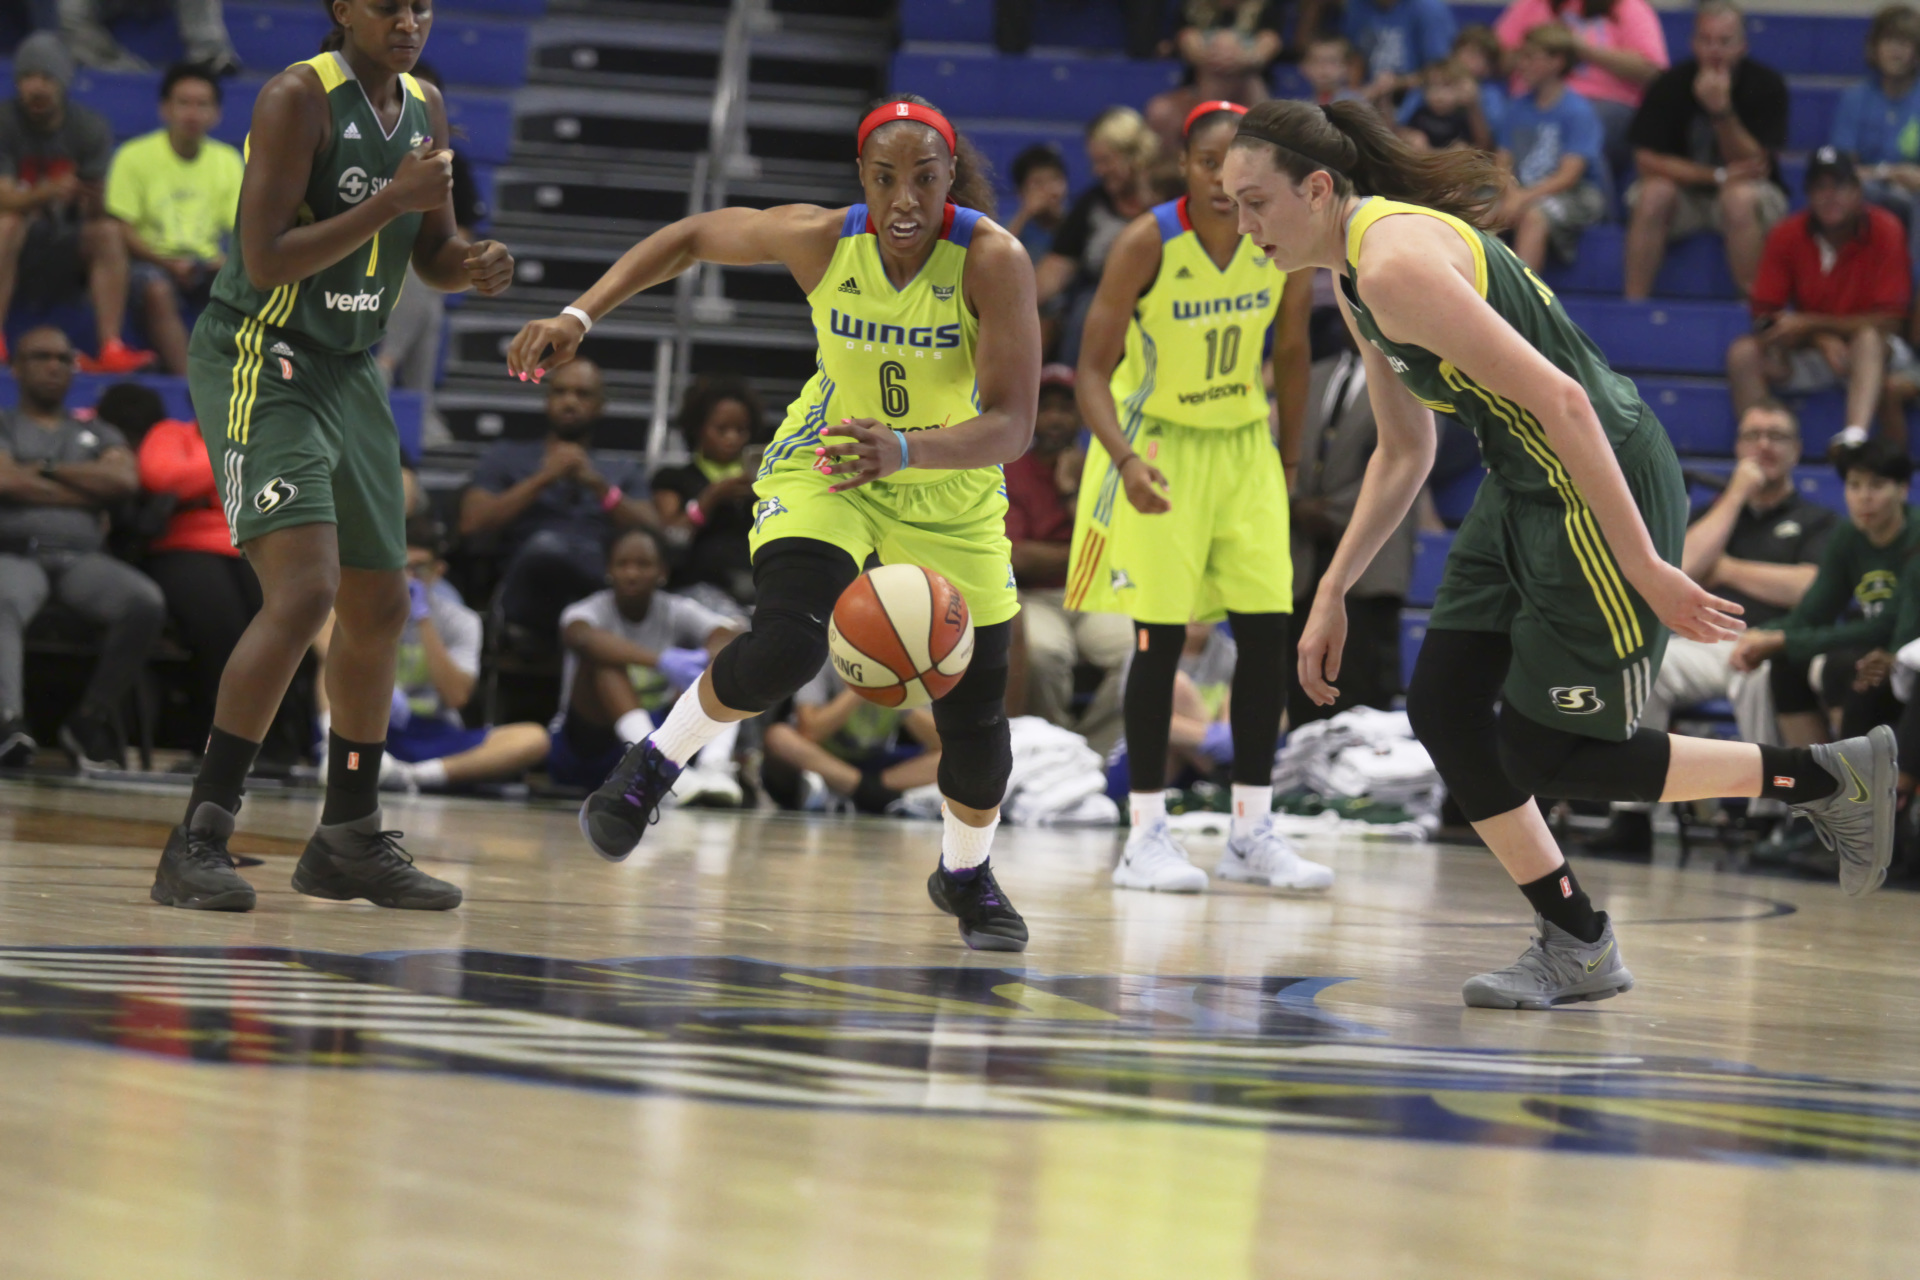 August 4, 2017 - Arlington, TX - The Dallas Wings' Kayla Thornton (6) chases after the ball in the game between the Dallas Wings and Seattle Storm. (Anthony Mazur/AM News Net)